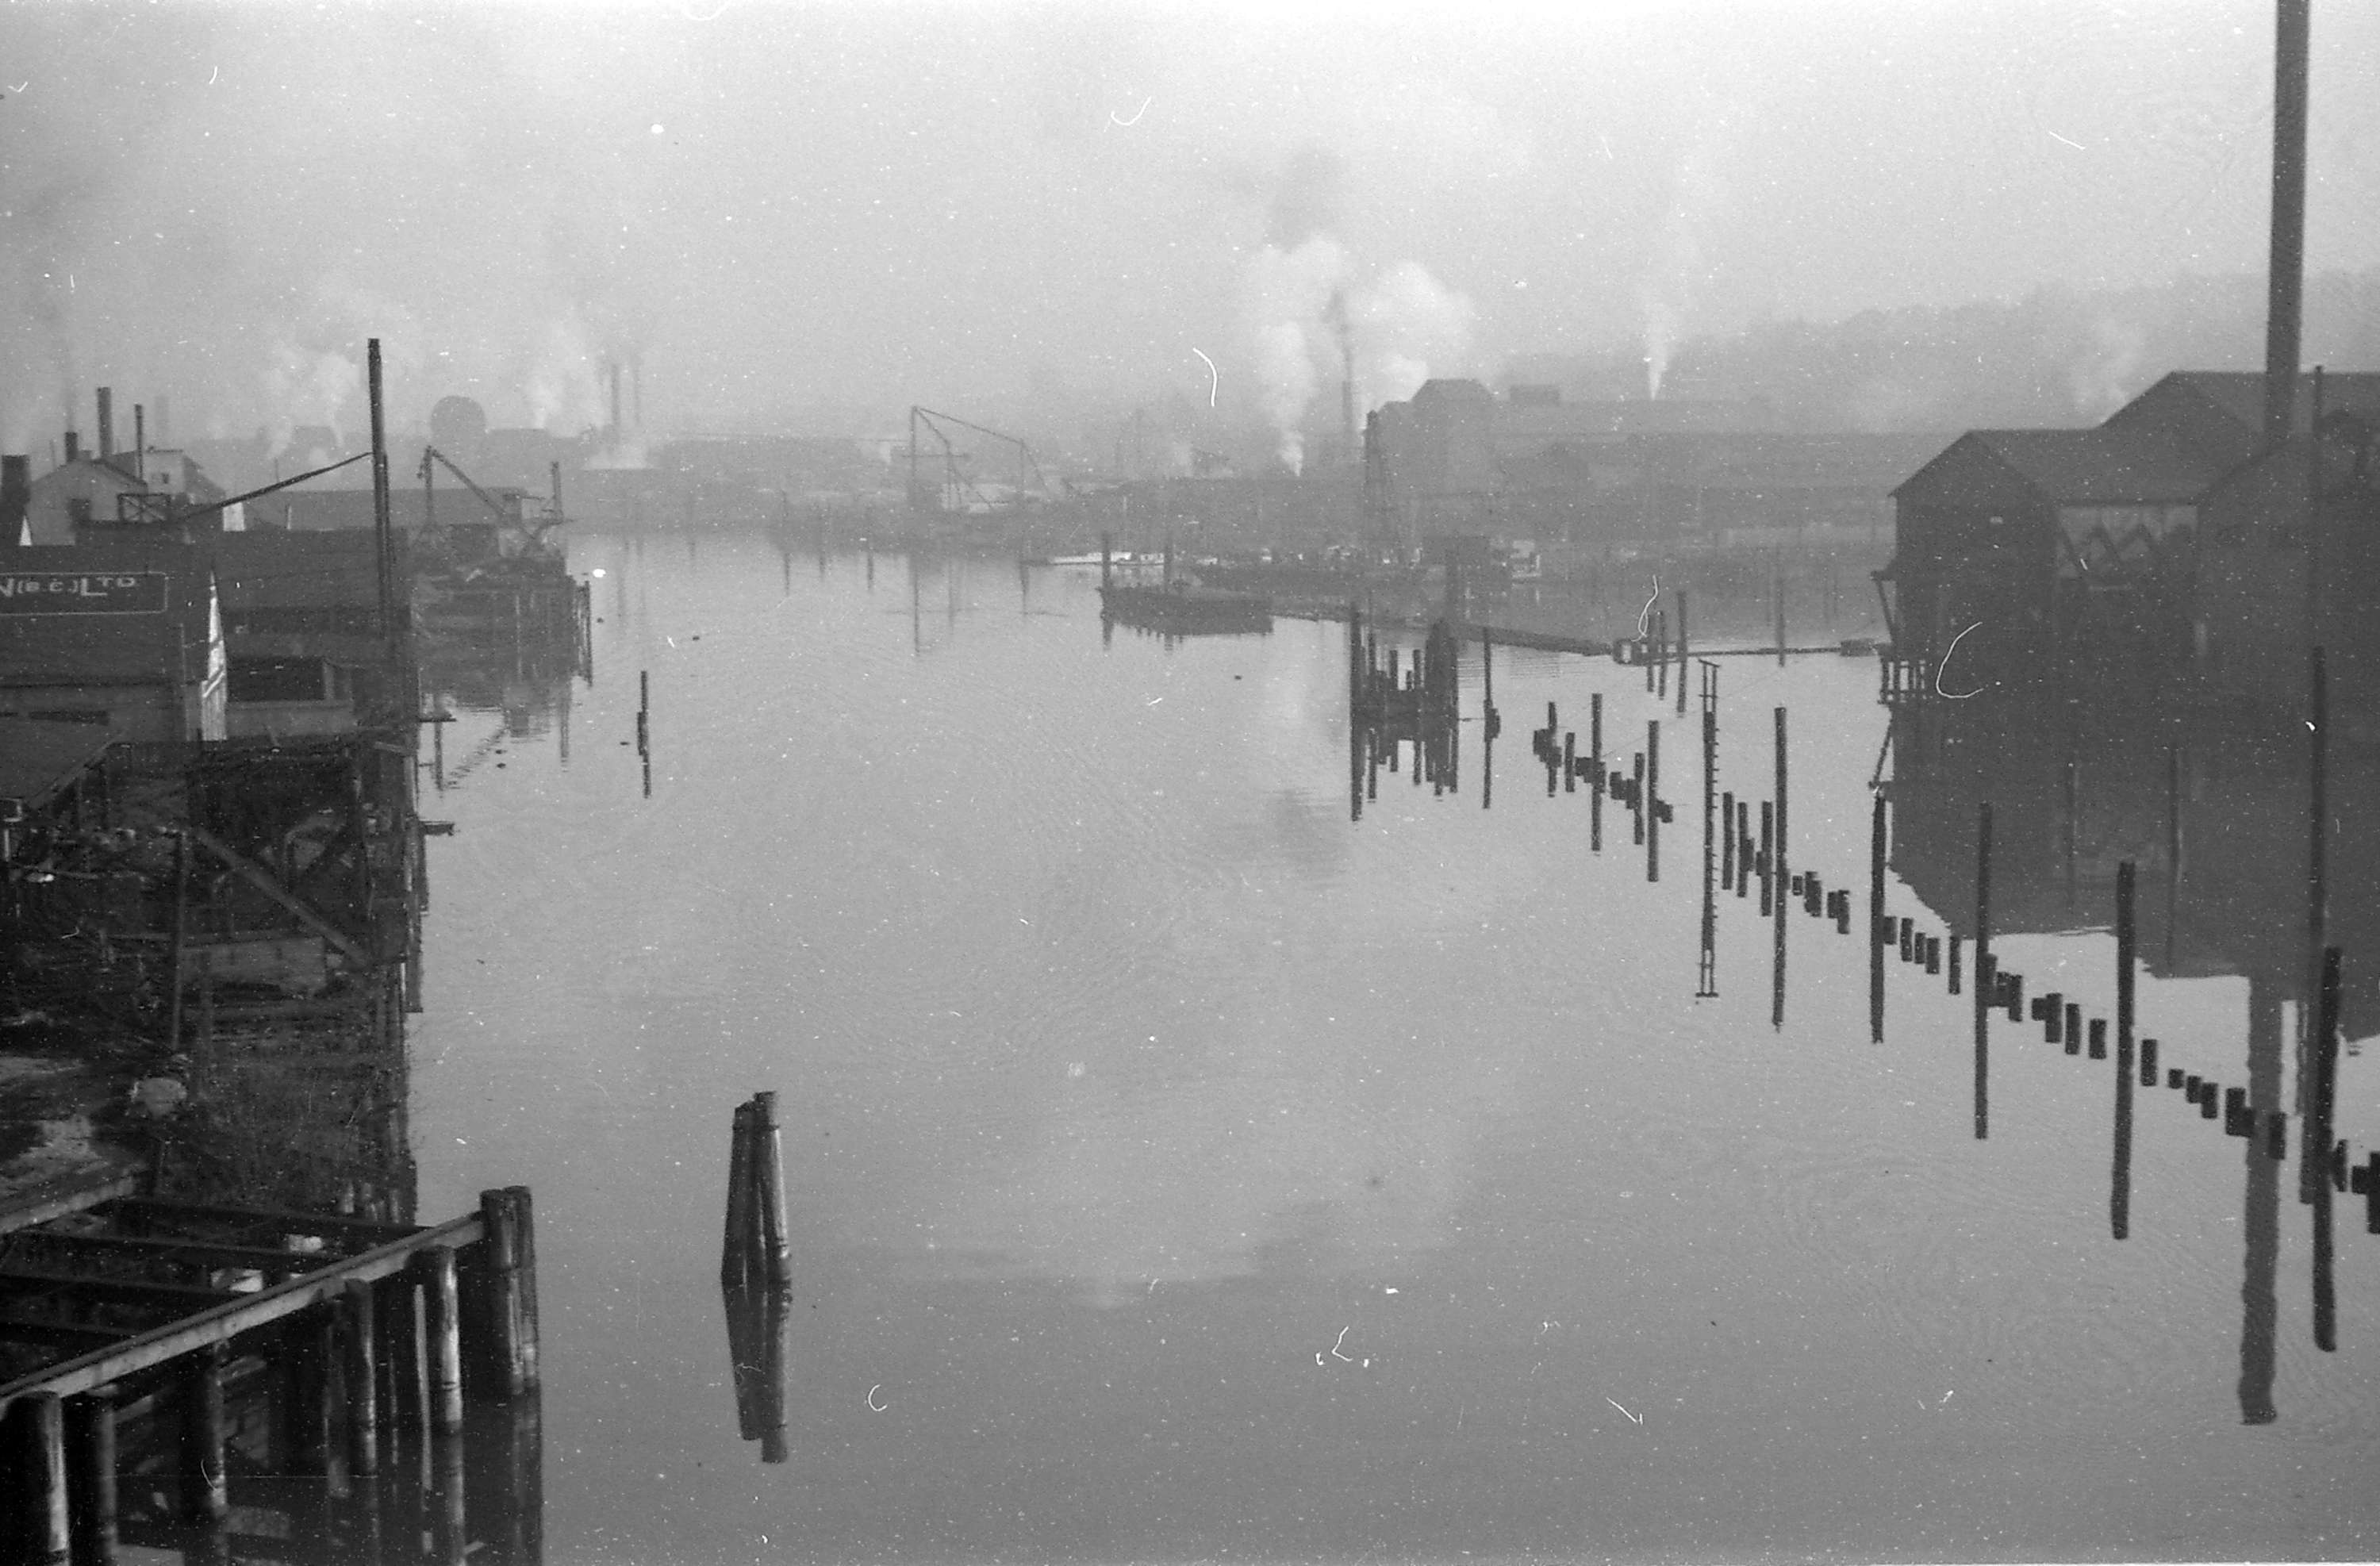 Buildings crowd the banks of a river. In the distance, smoke billows.